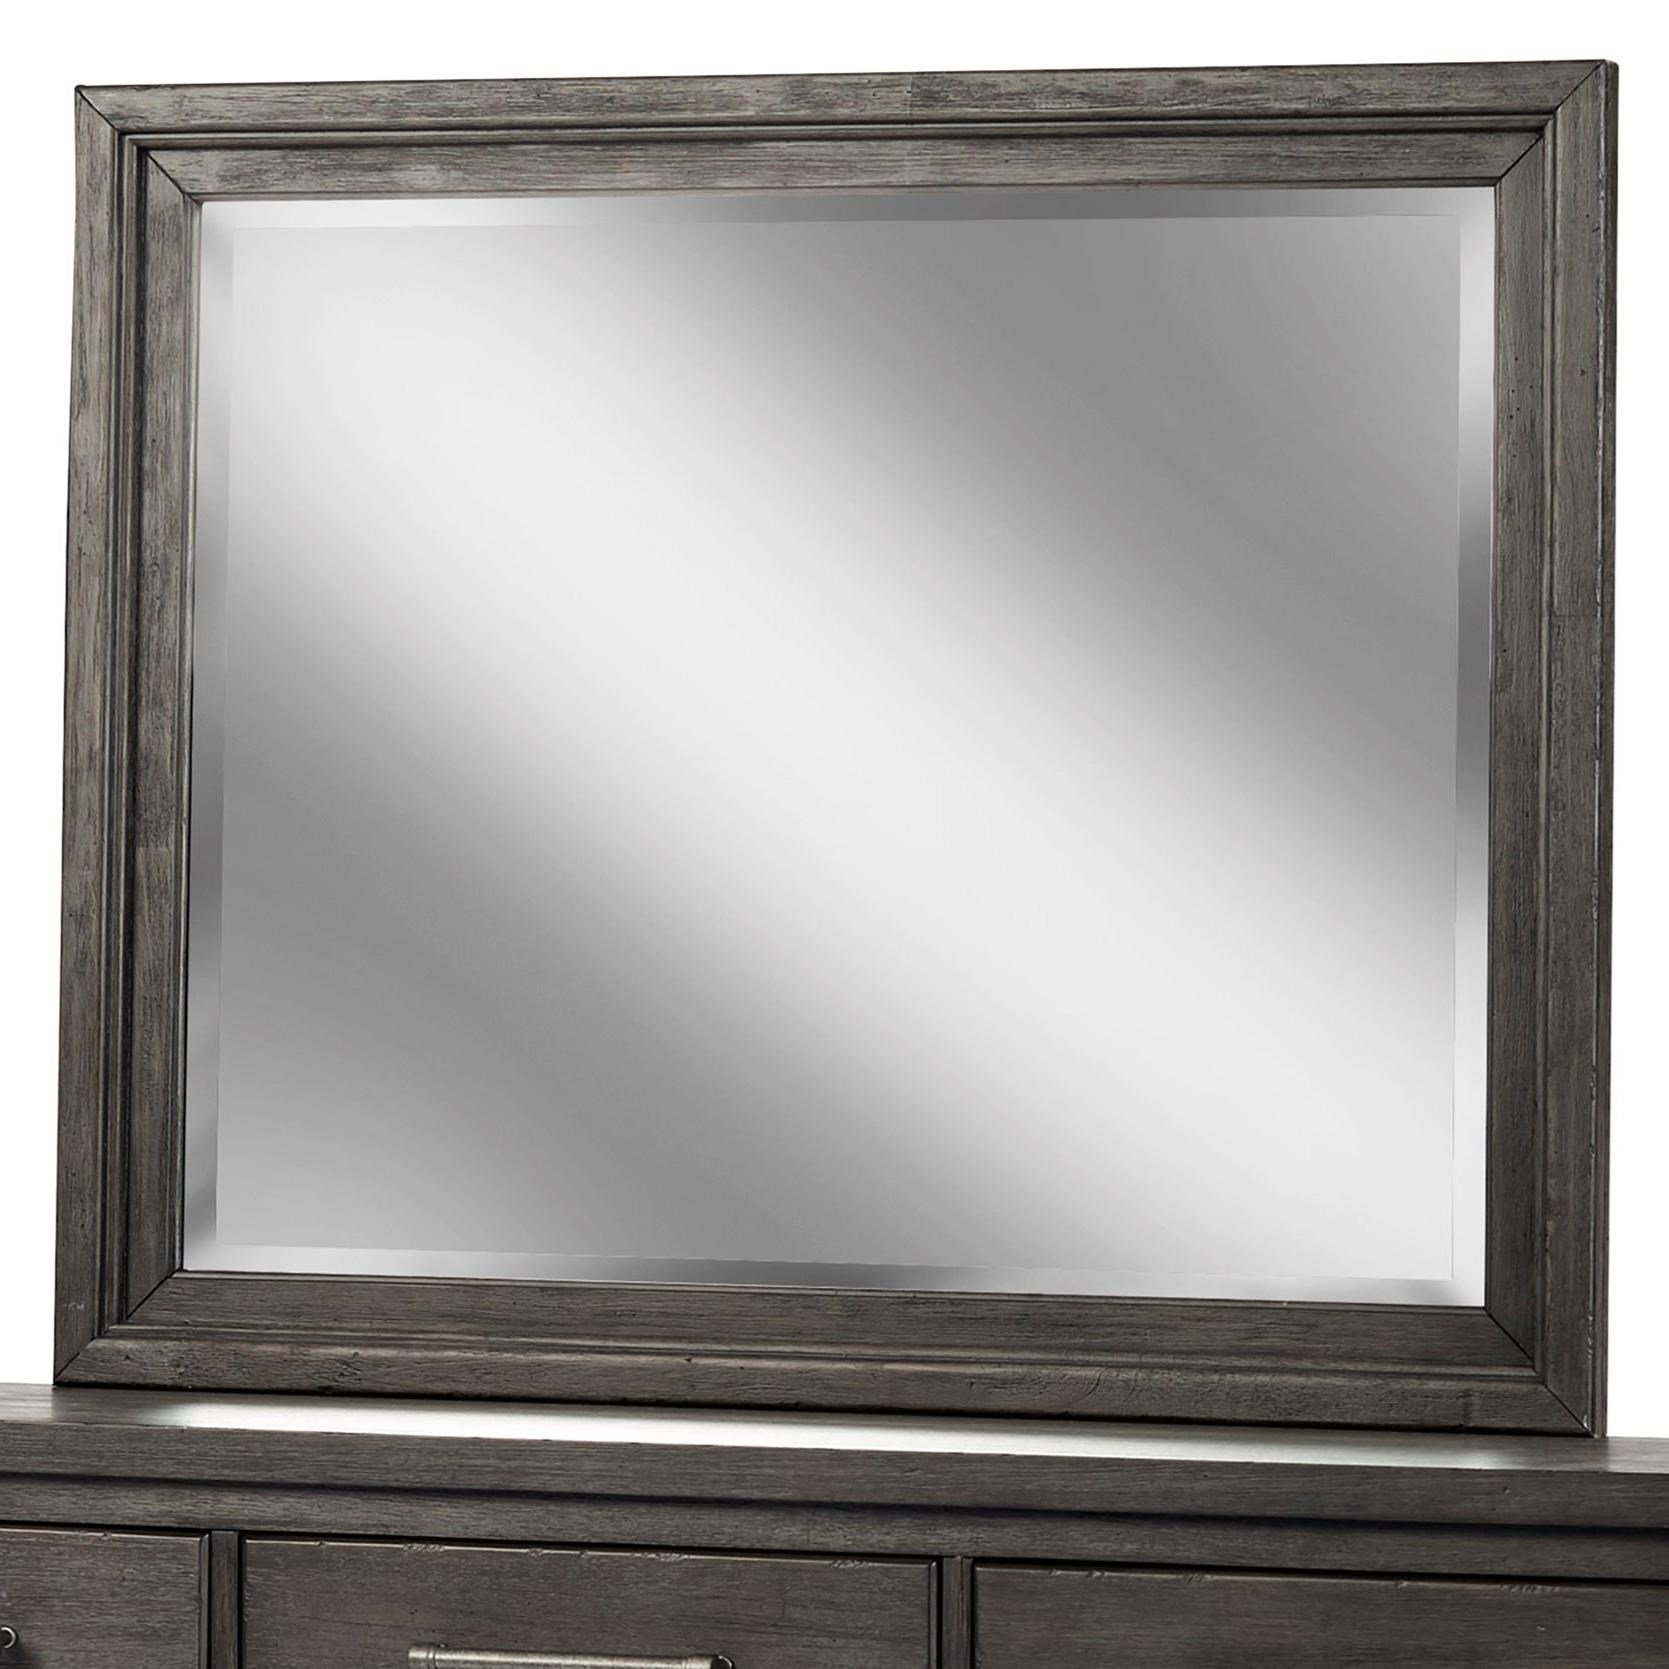 Burbank Mirror by Klaussner International at Northeast Factory Direct